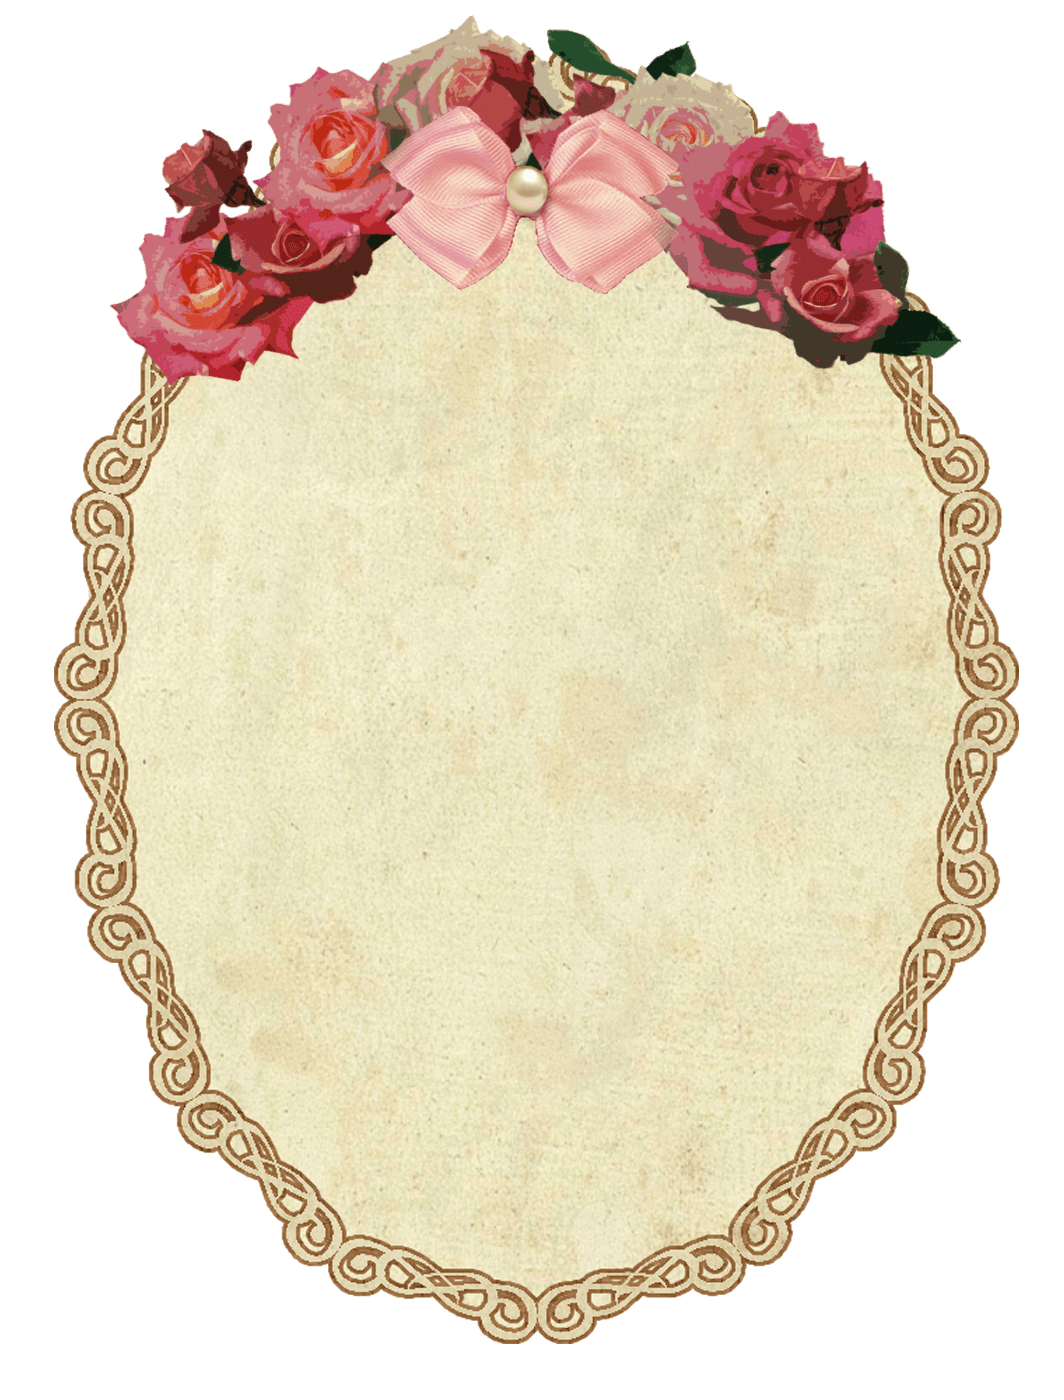 Oval Frame Design Vintage With Flowers